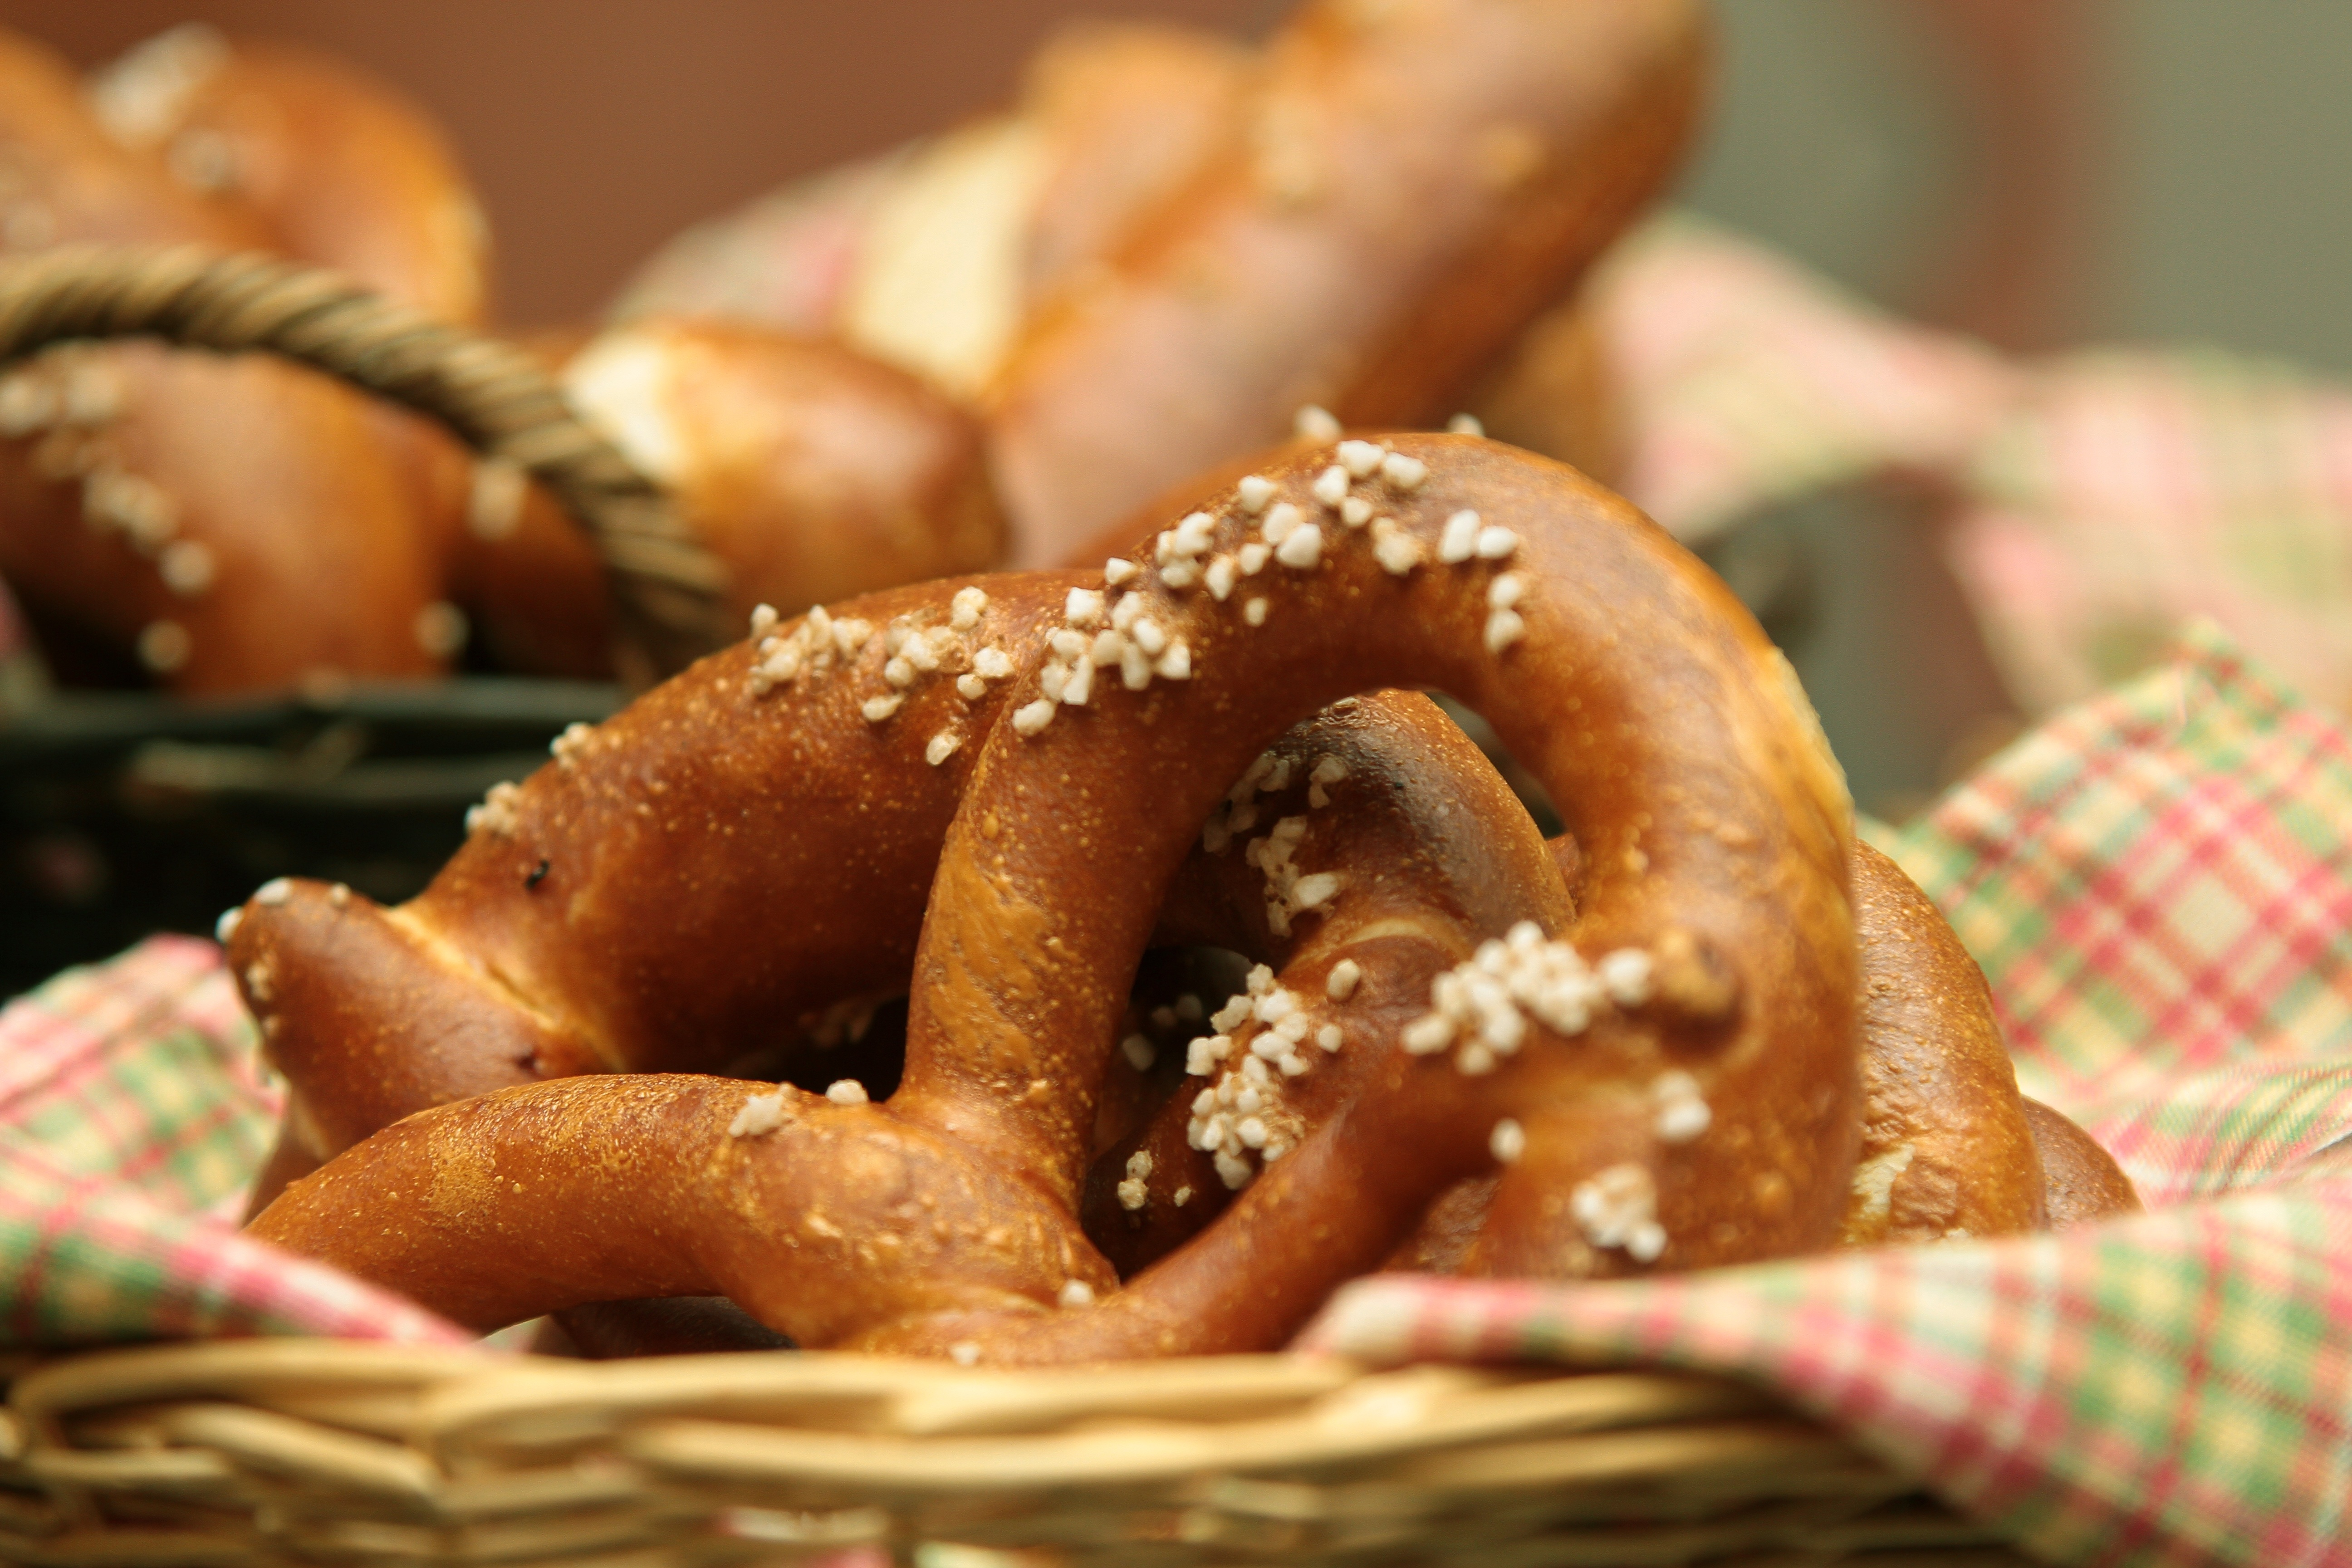 Proksch's Pretzels: An Oral History by Hannah Bockoven